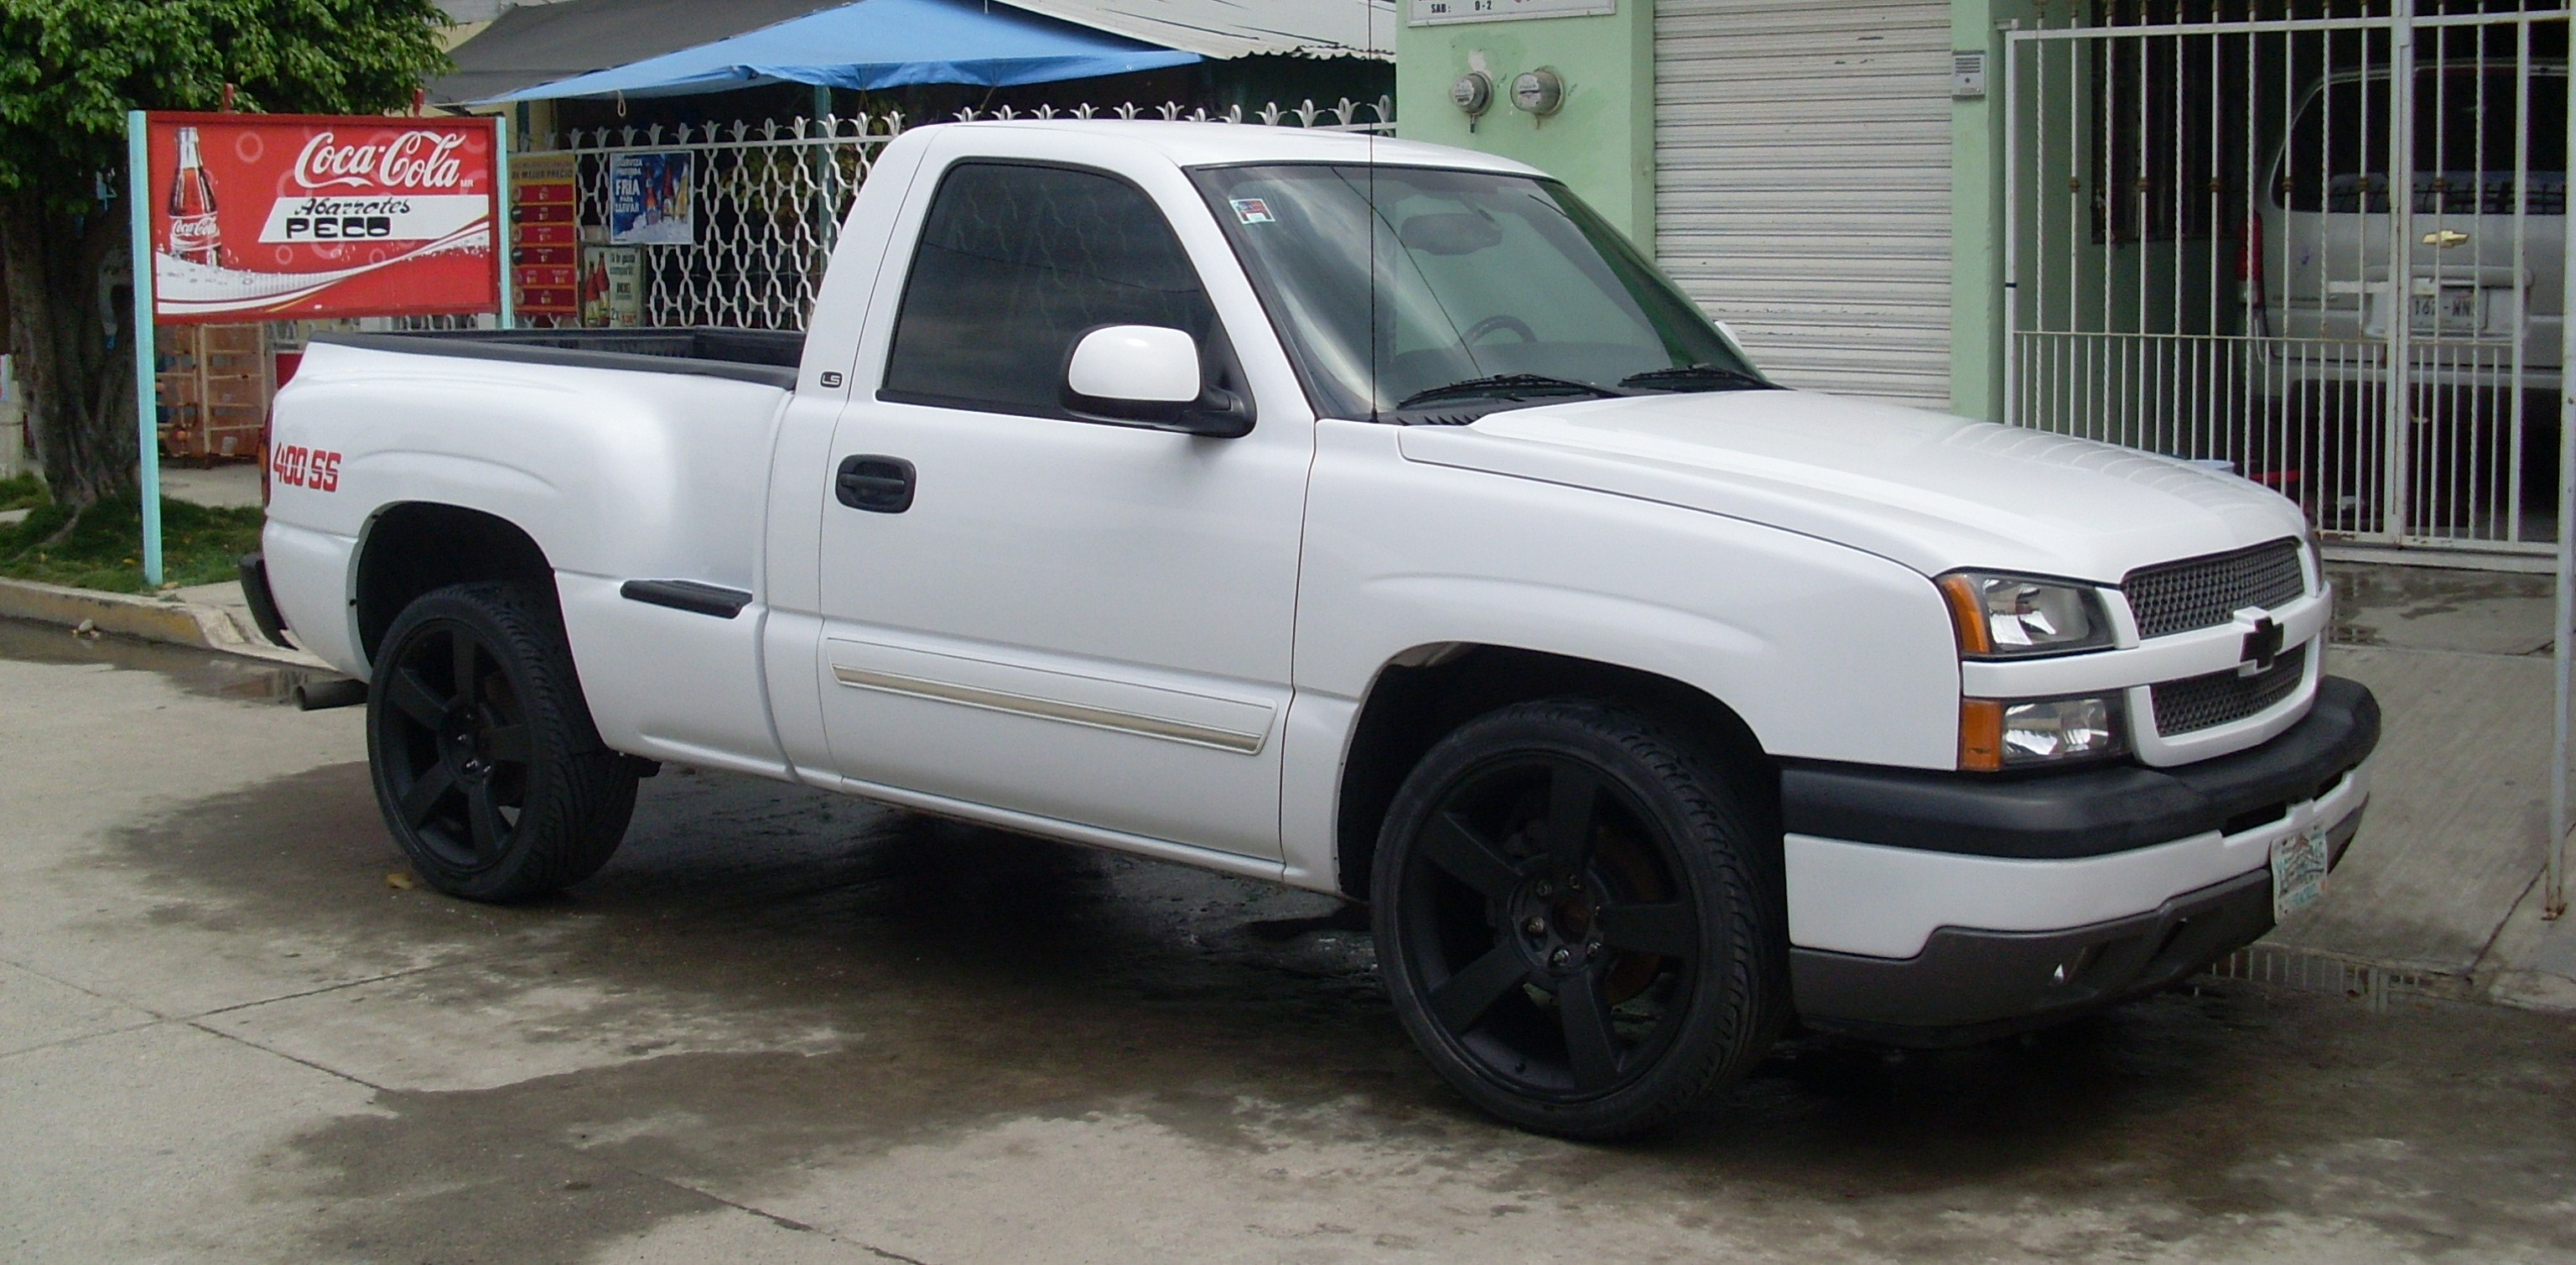 400ssgarces 2005 chevrolet silverado 1500 regular cab specs photos modification info at cardomain. Black Bedroom Furniture Sets. Home Design Ideas